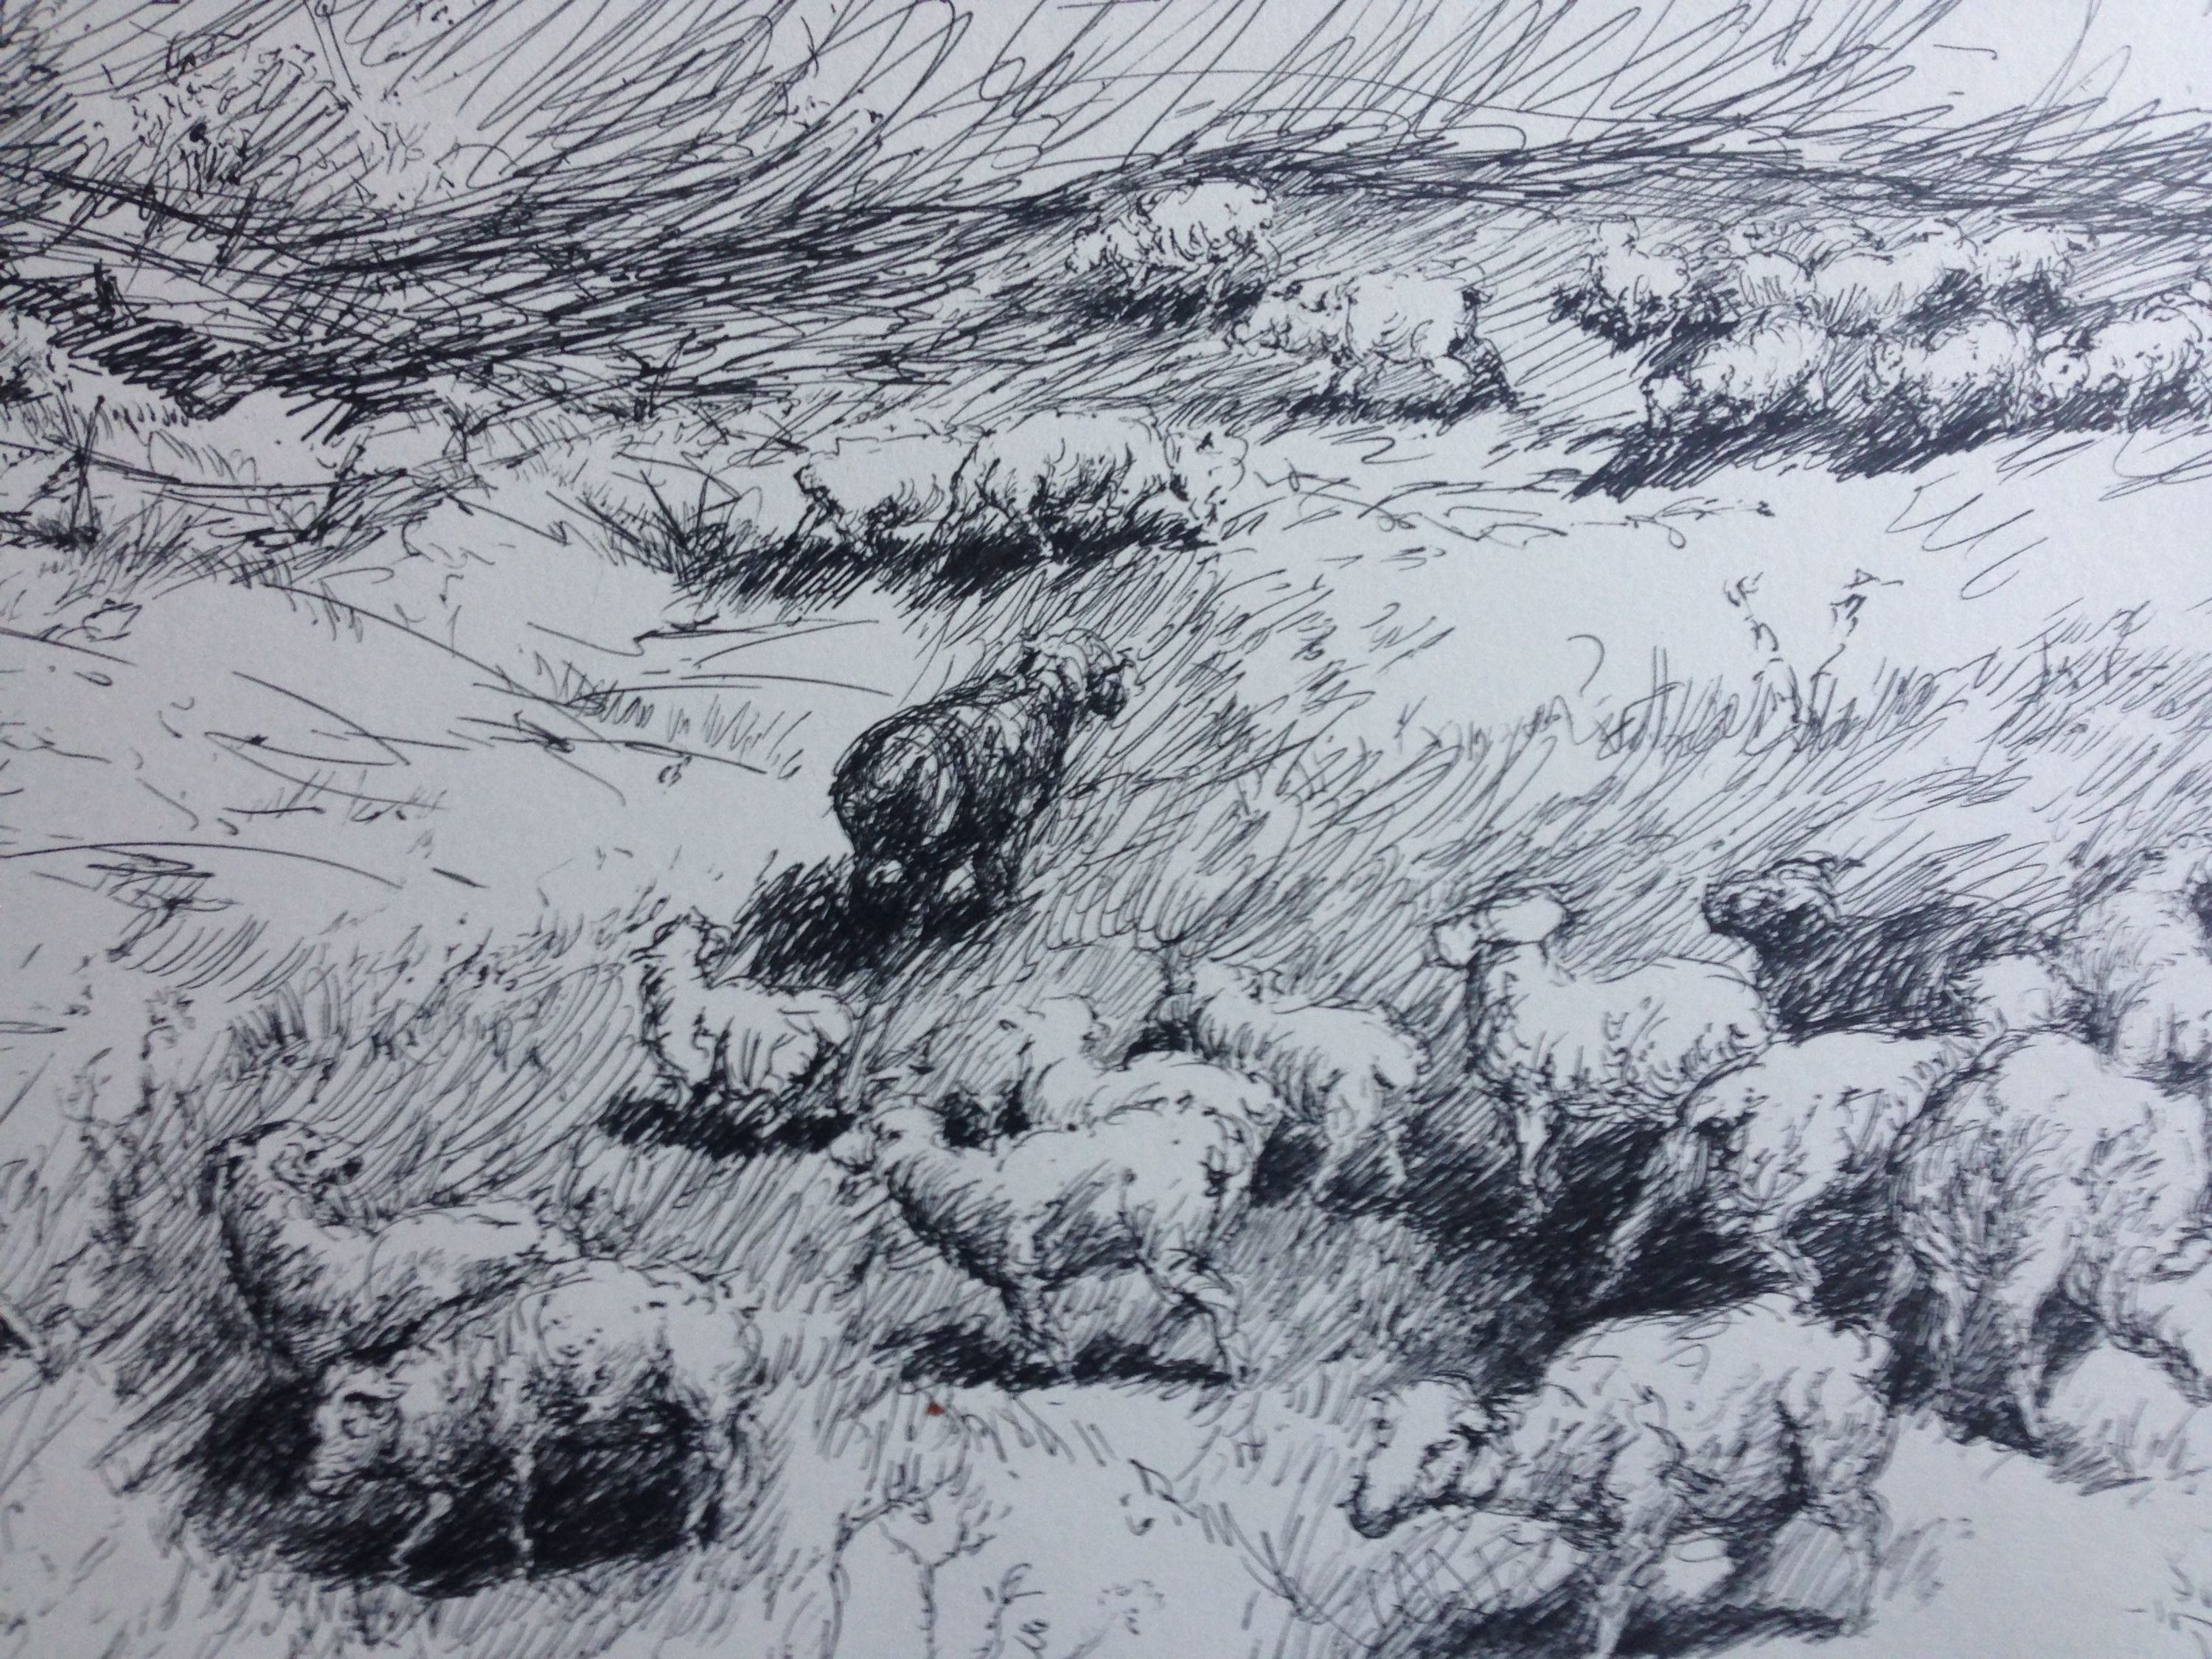 Sheeps_study1_-_rafferty_-_drawing_zyuzea